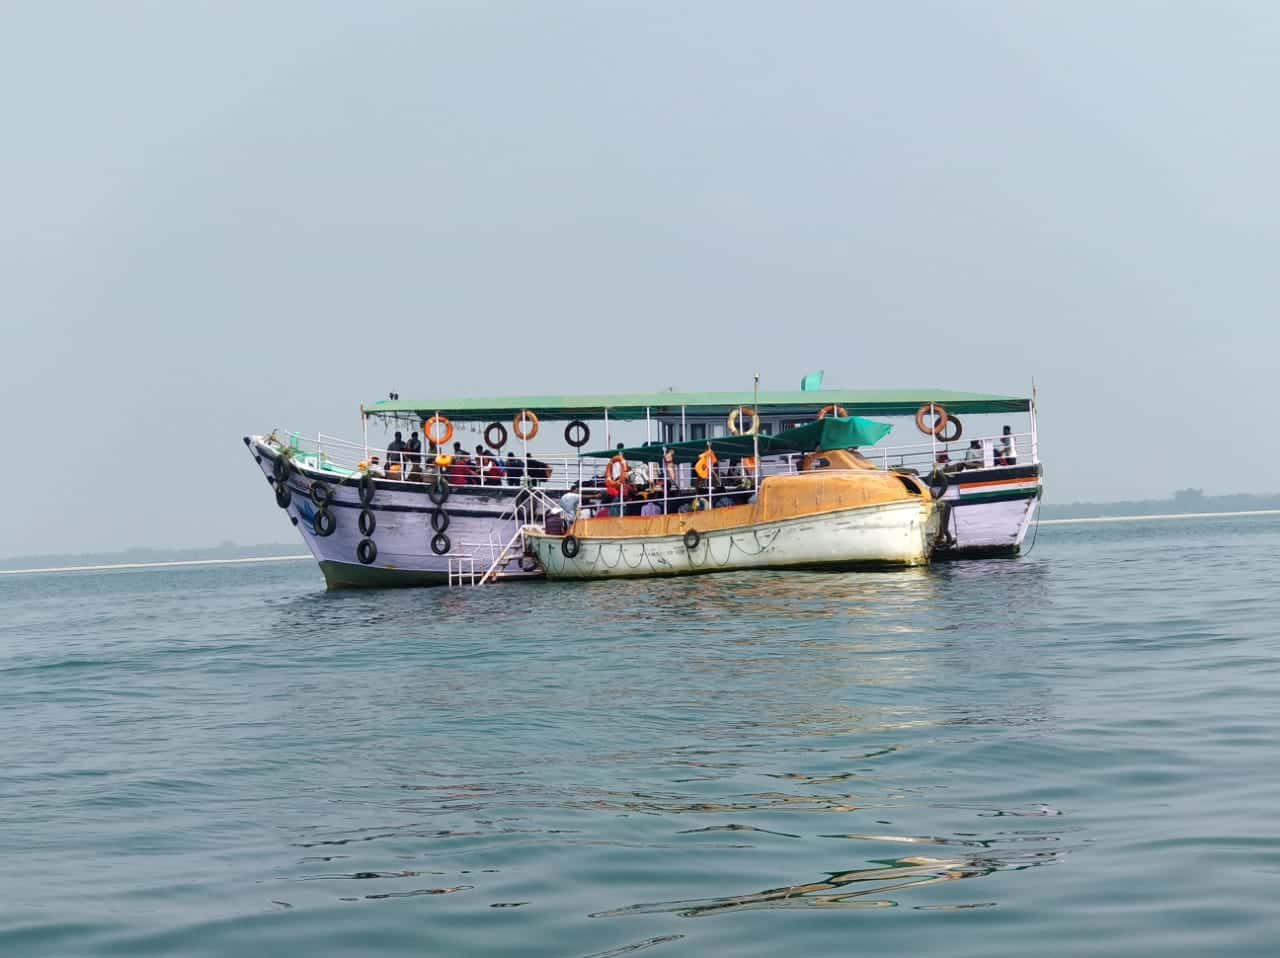 Ferry-service-is-quite-frequent-and-a-ferry-leaves-every-half-an-hour-for-the-St.-Mary's-Island